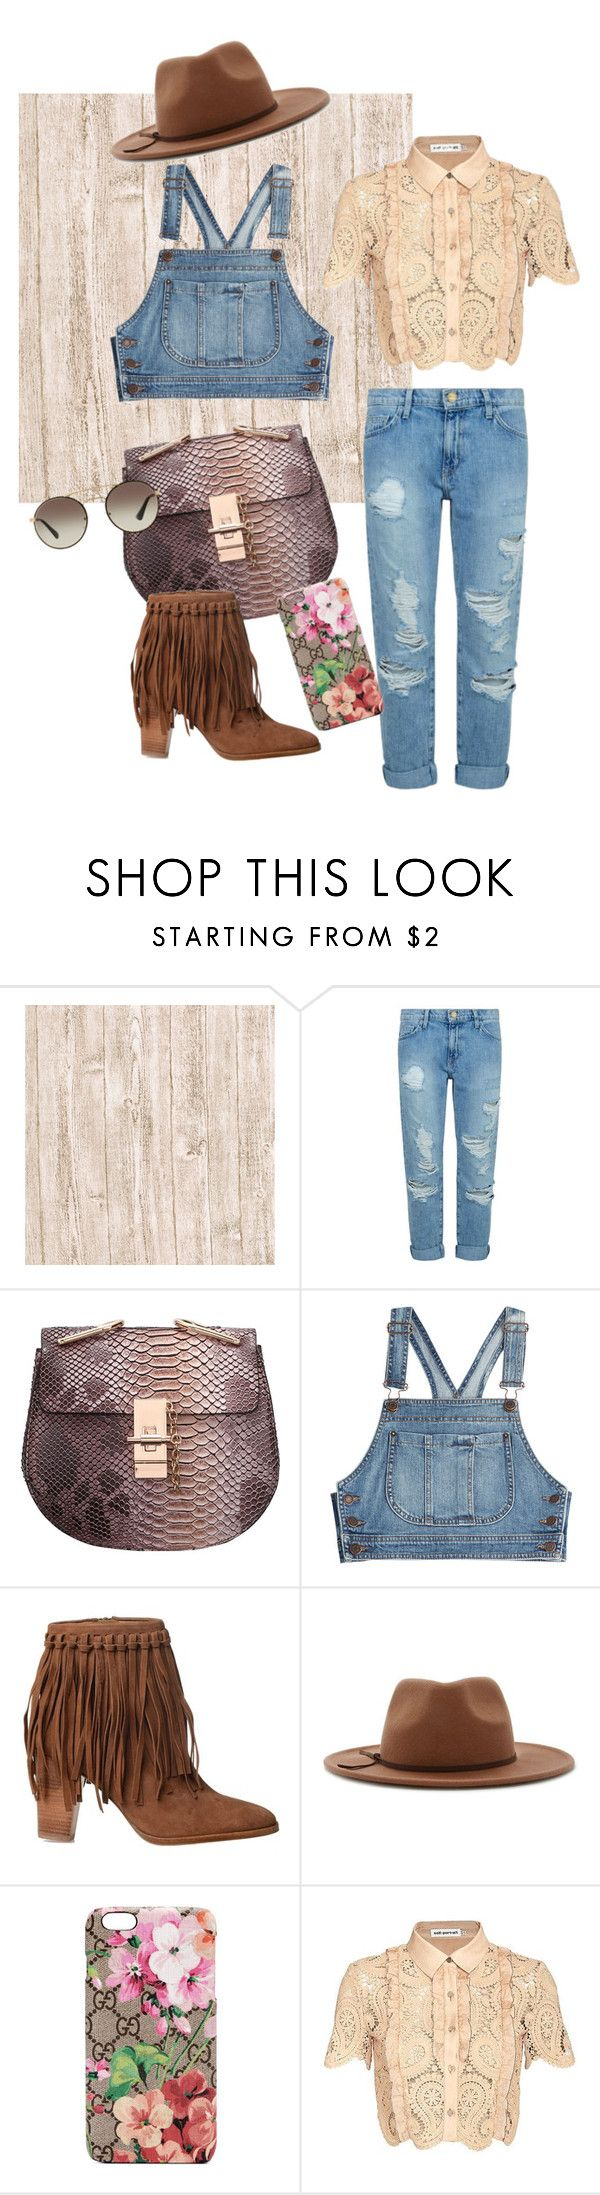 """""""Trendy Farmer"""" by slang-bait on Polyvore featuring Current/Elliott, Moschino, Ralph Lauren, Forever 21, Gucci, self-portrait and Prada"""